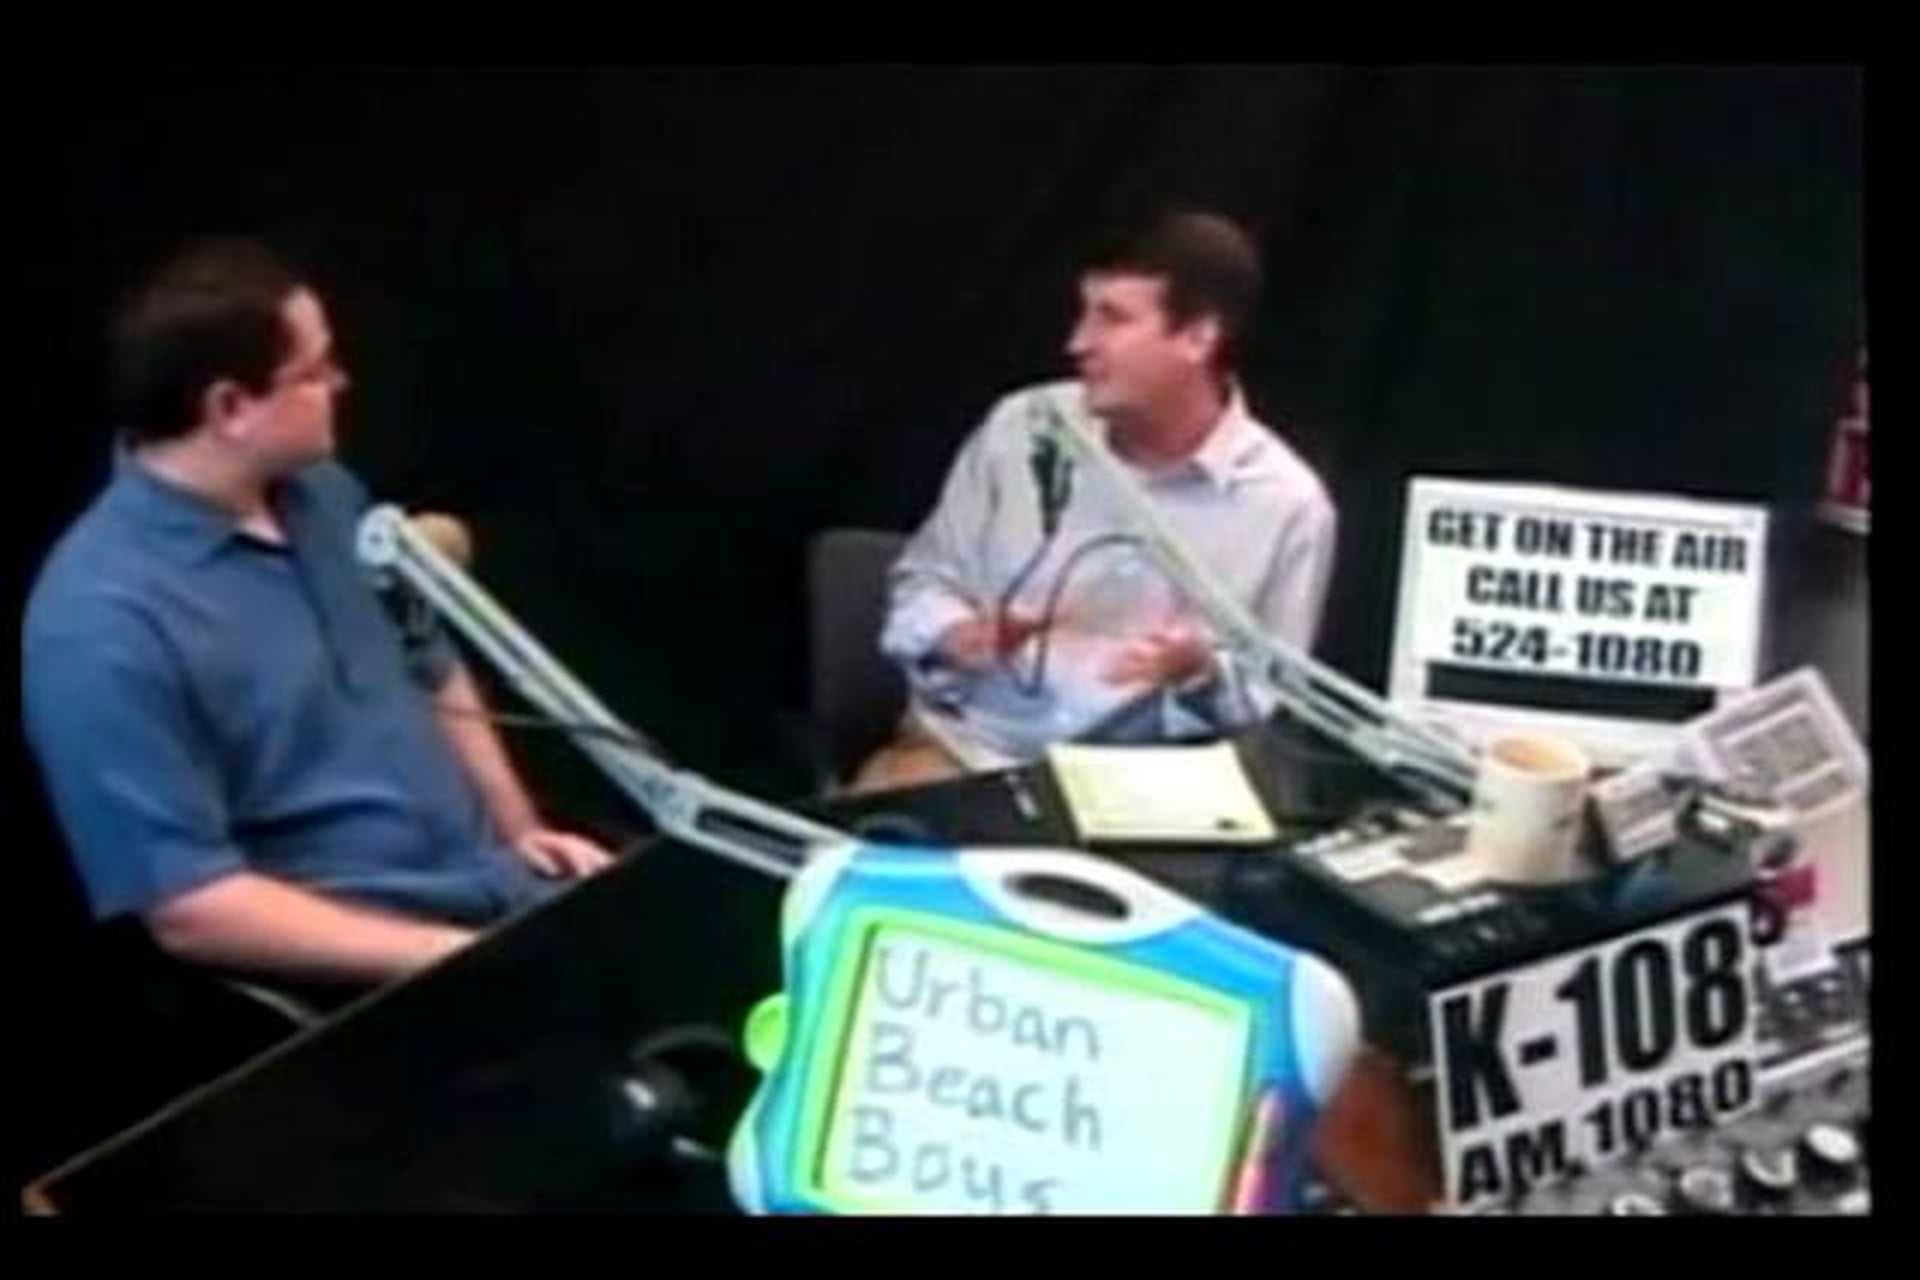 Urban Beach Boys featuring Rob Bertholf (SEO, WordPress & Social Media Marketing)